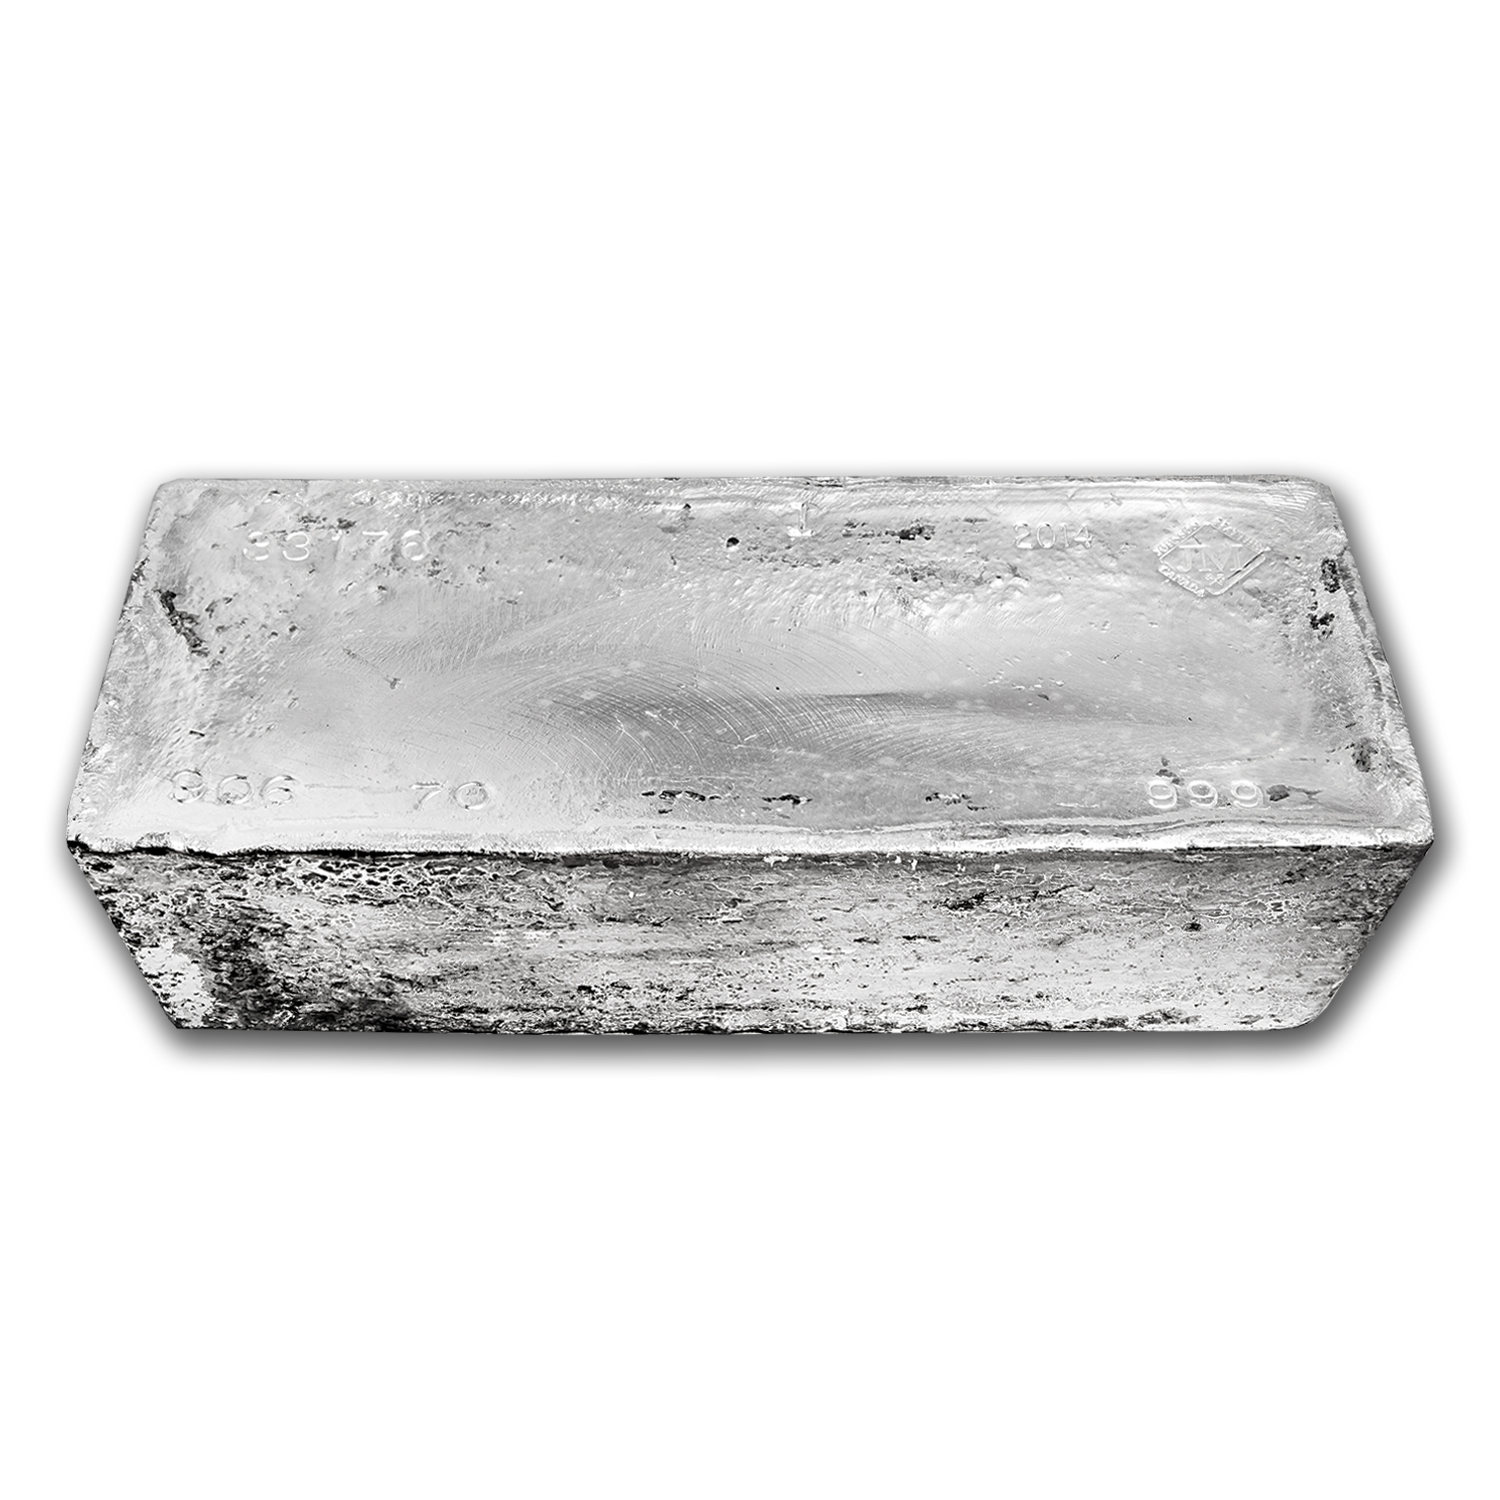 1023.00 oz Silver Bars - Johnson Matthey